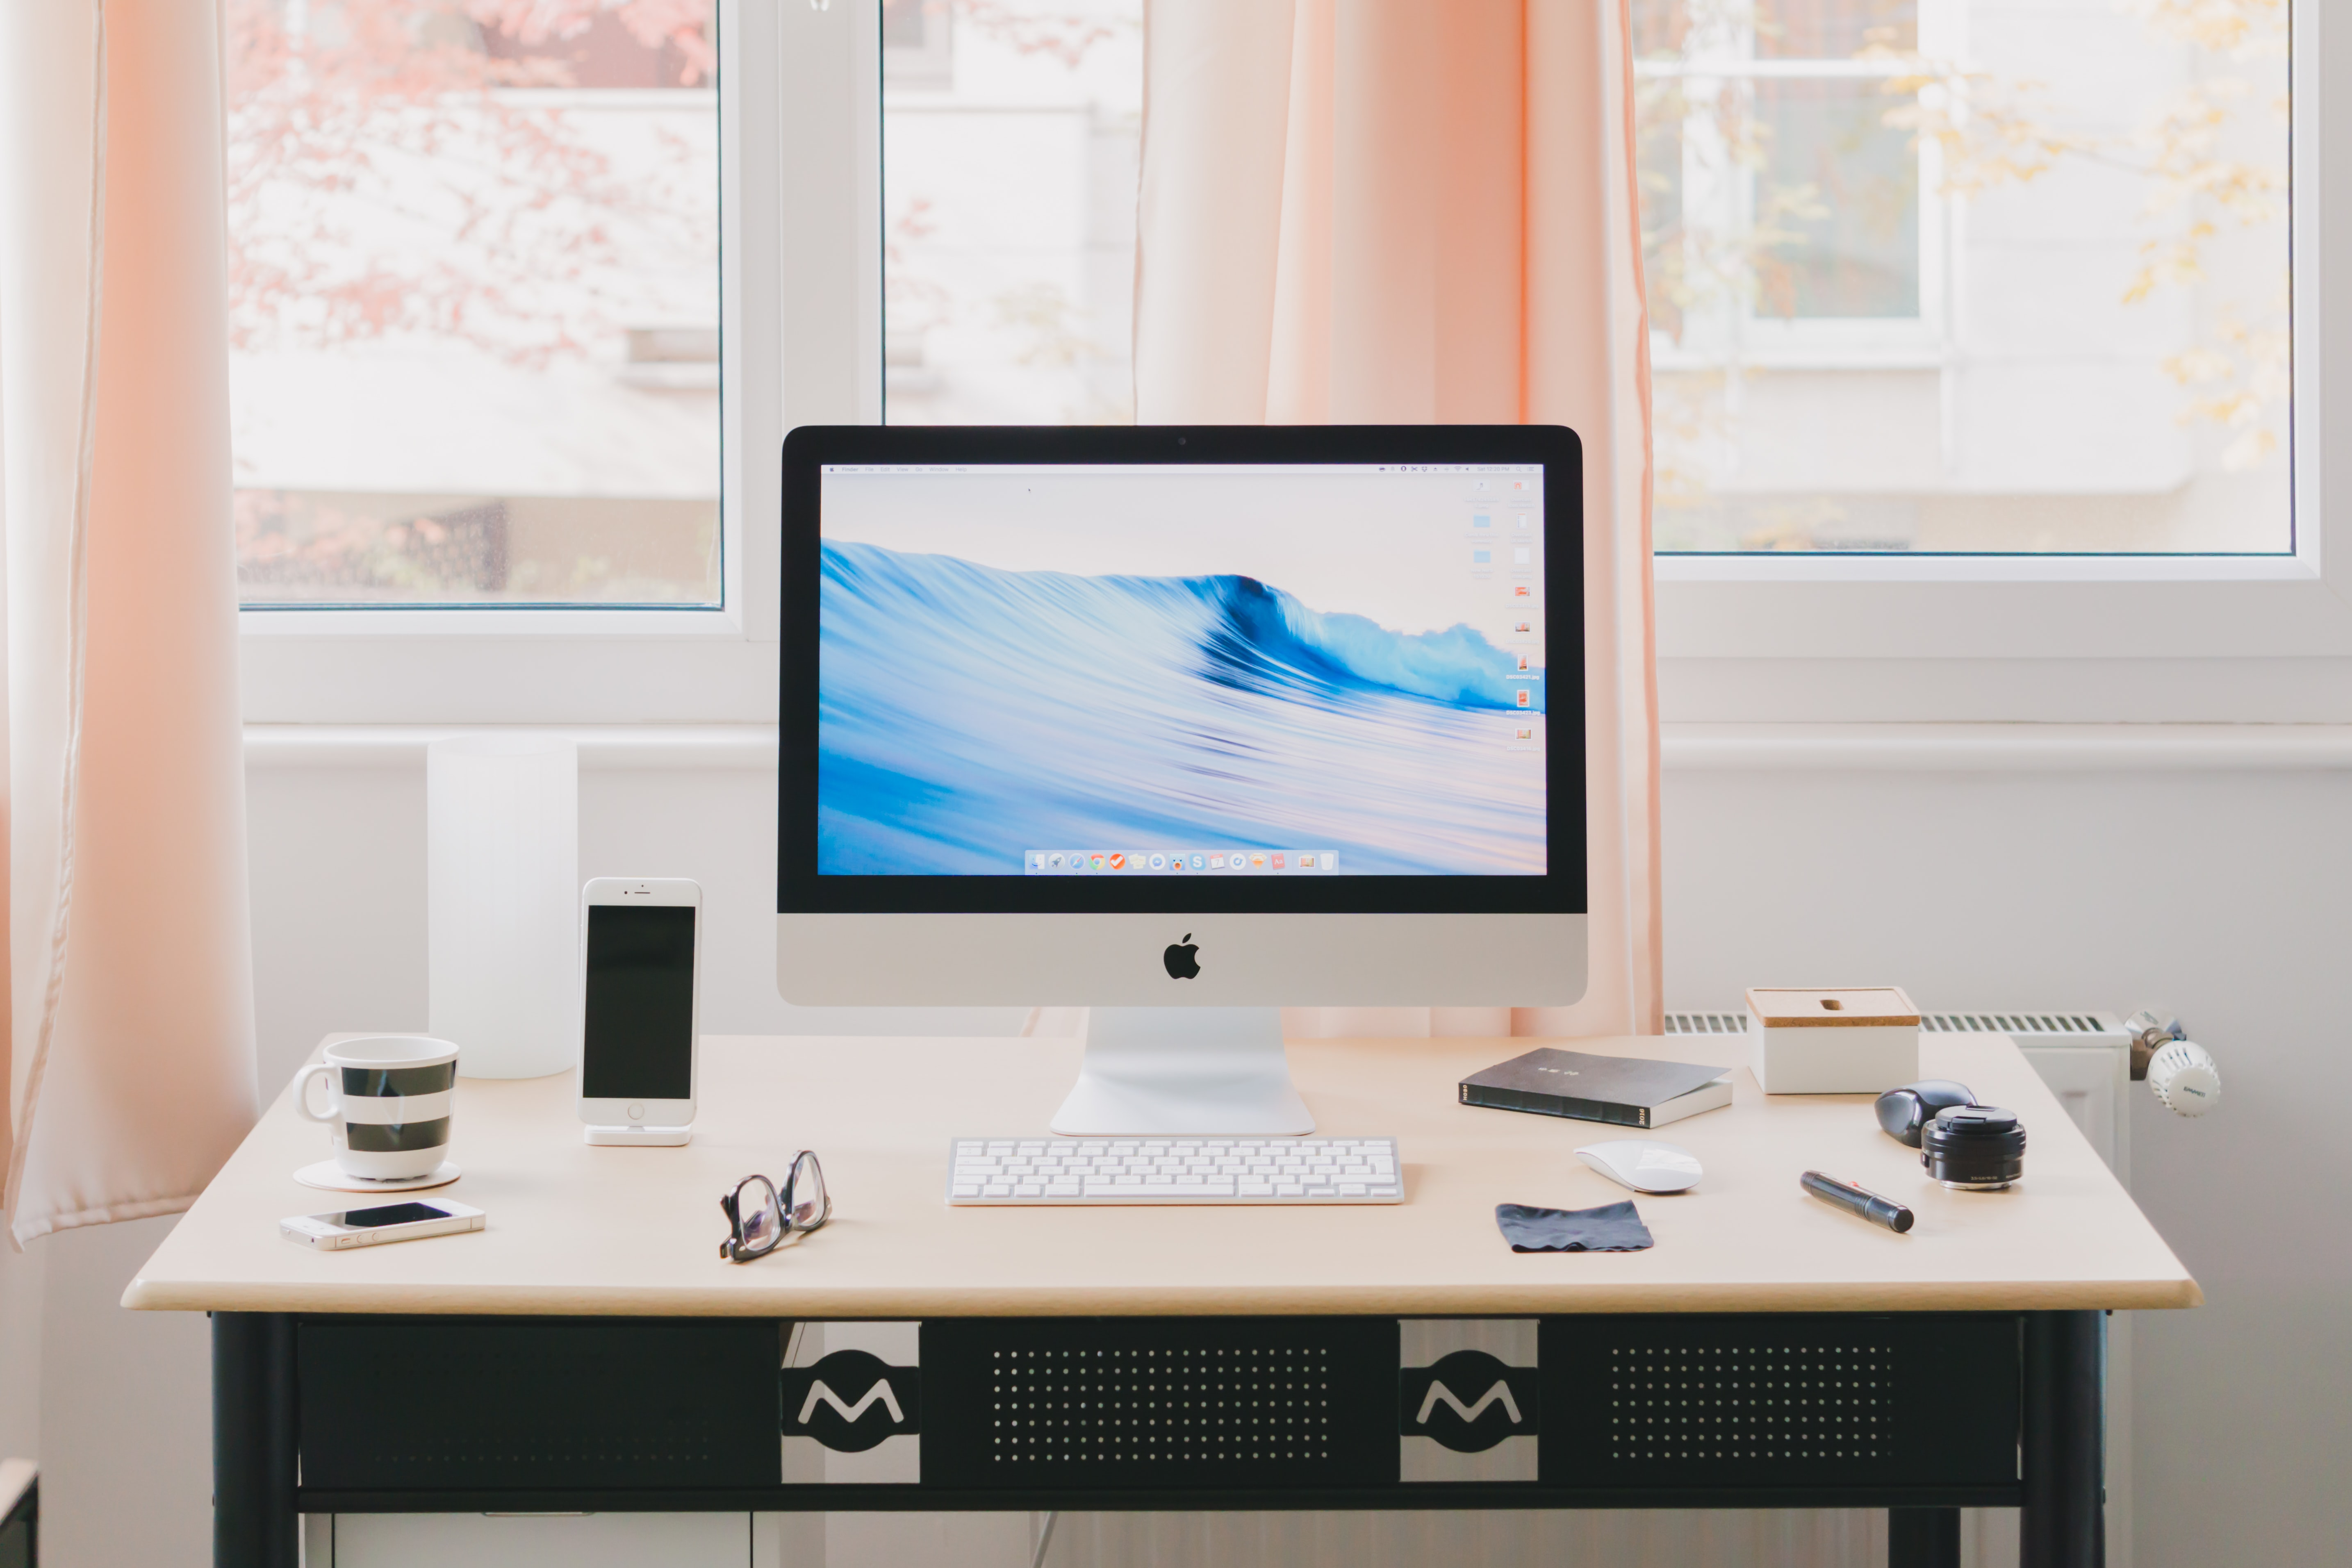 11 Work From Home Essentials for your Home Office